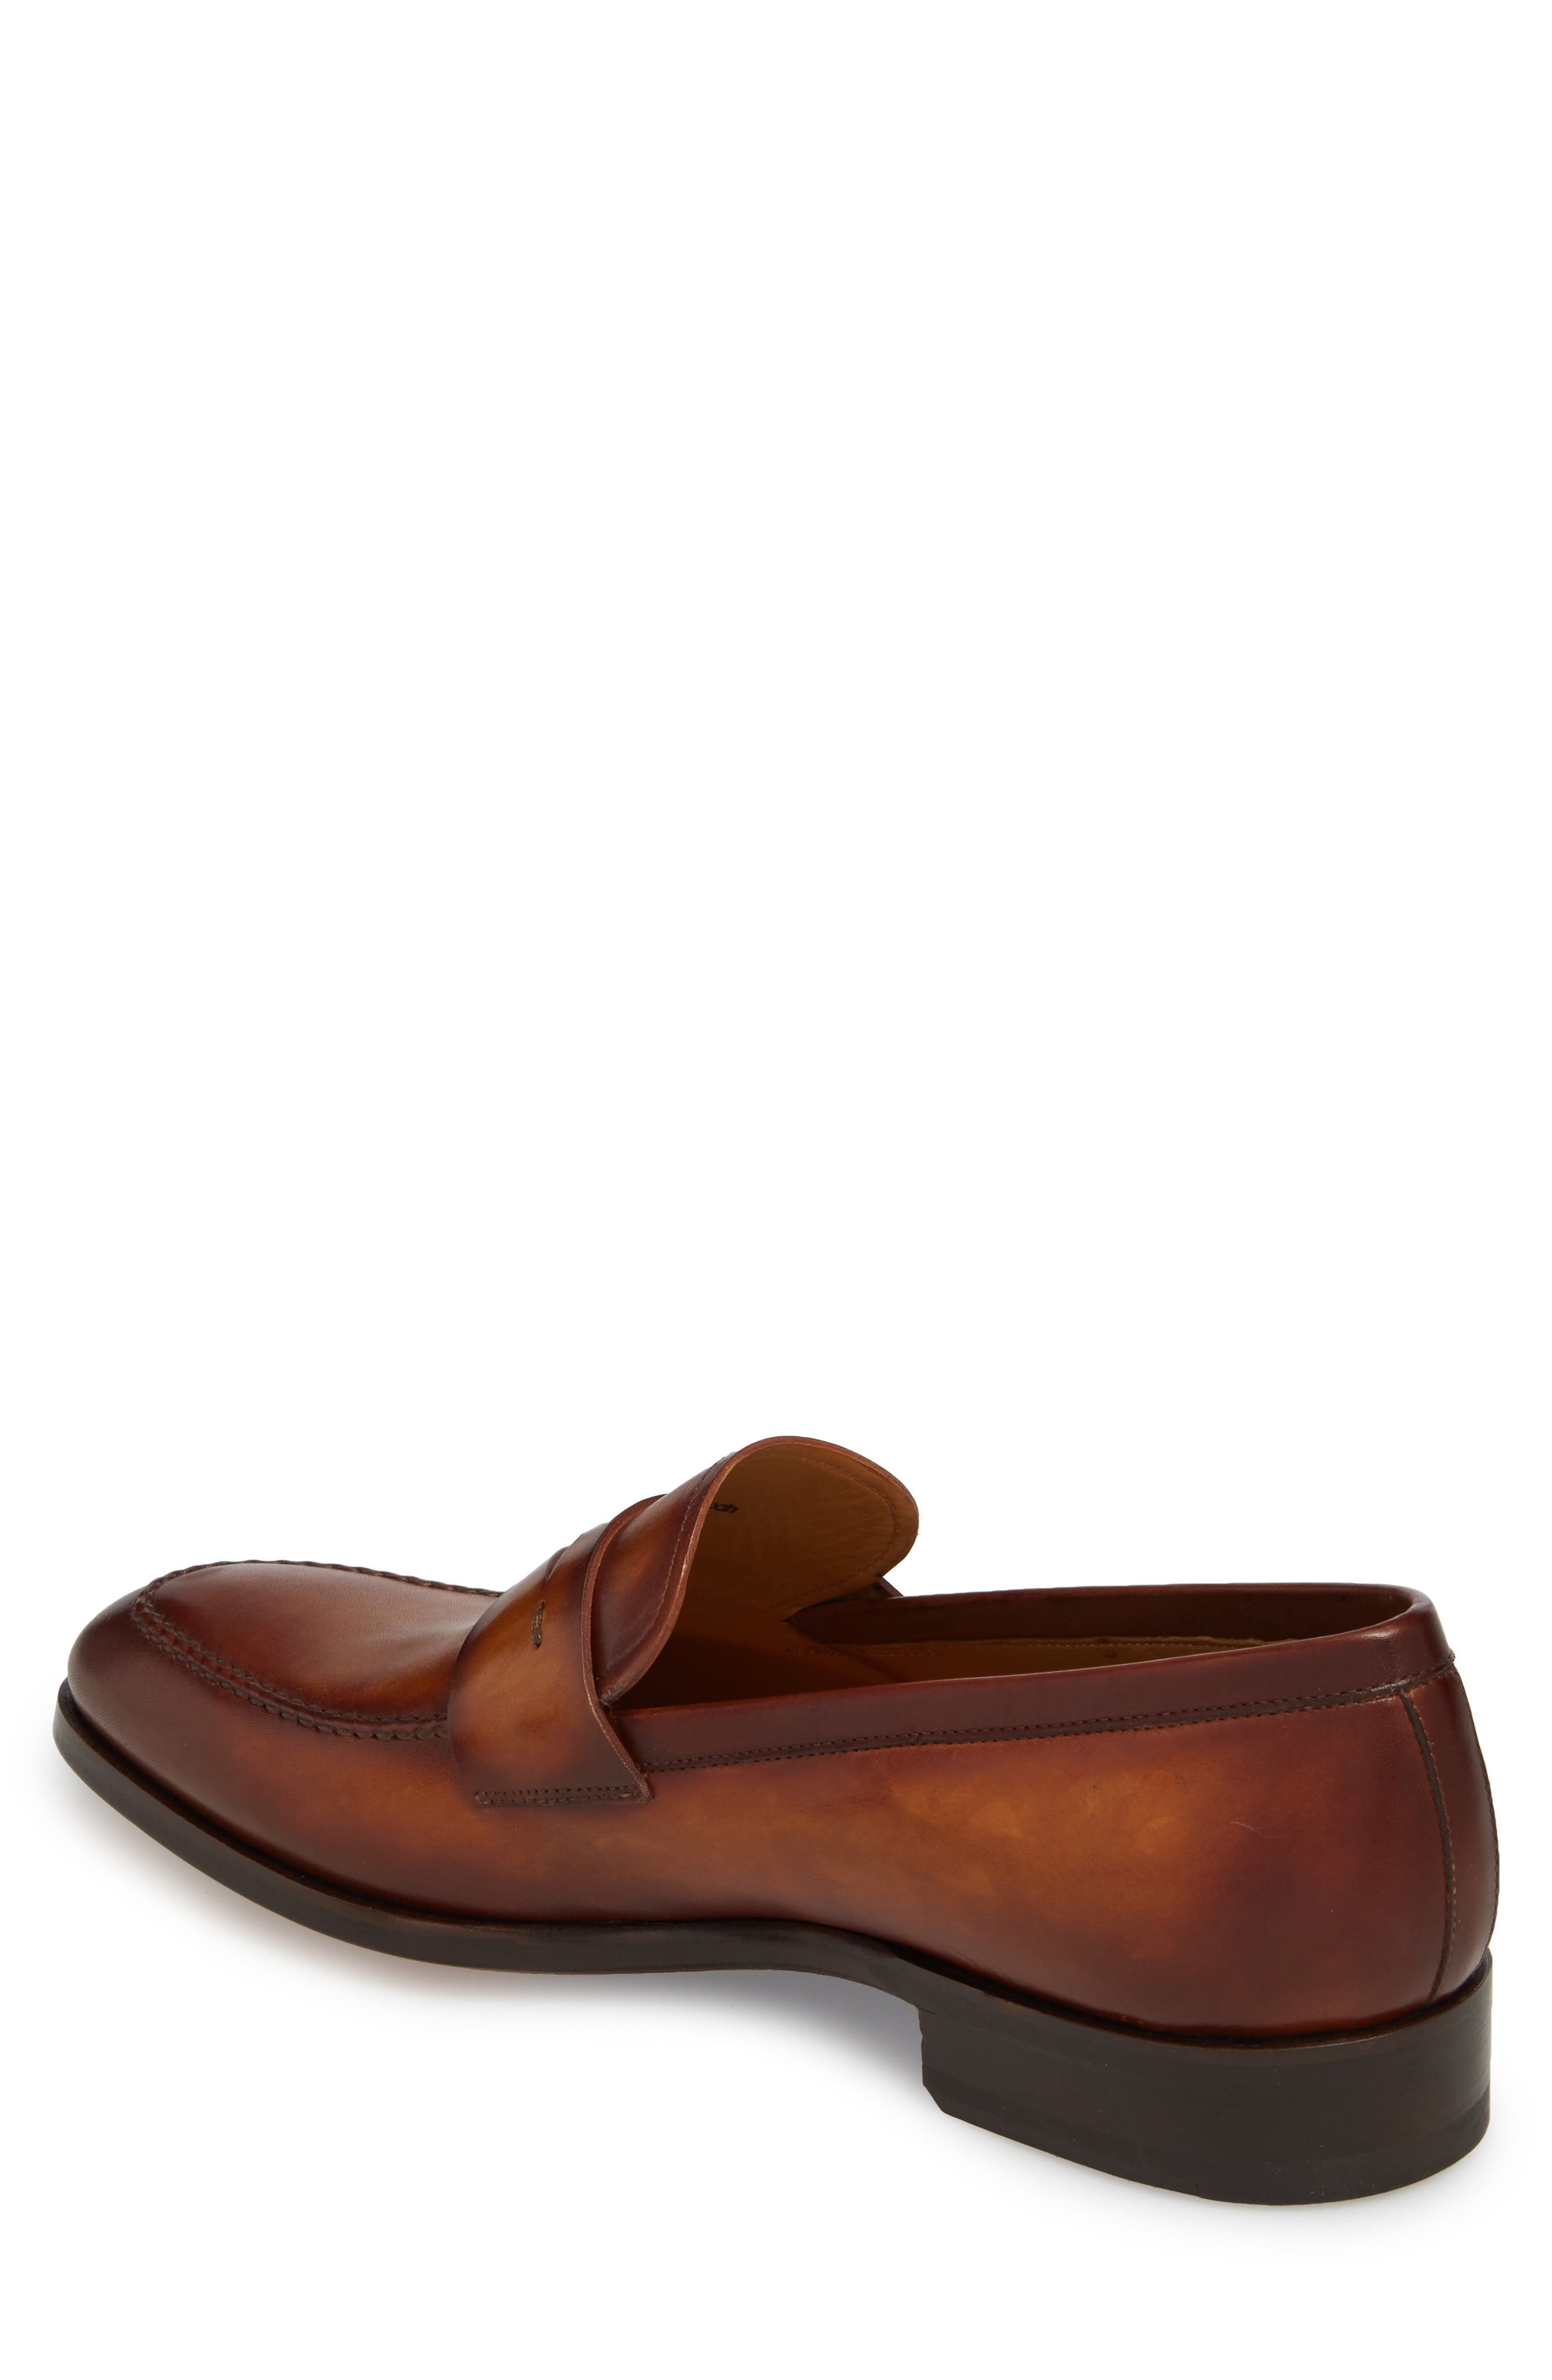 Rolly Apron Toe Penny Loafer,                             Alternate thumbnail 2, color,                             Brown Leather